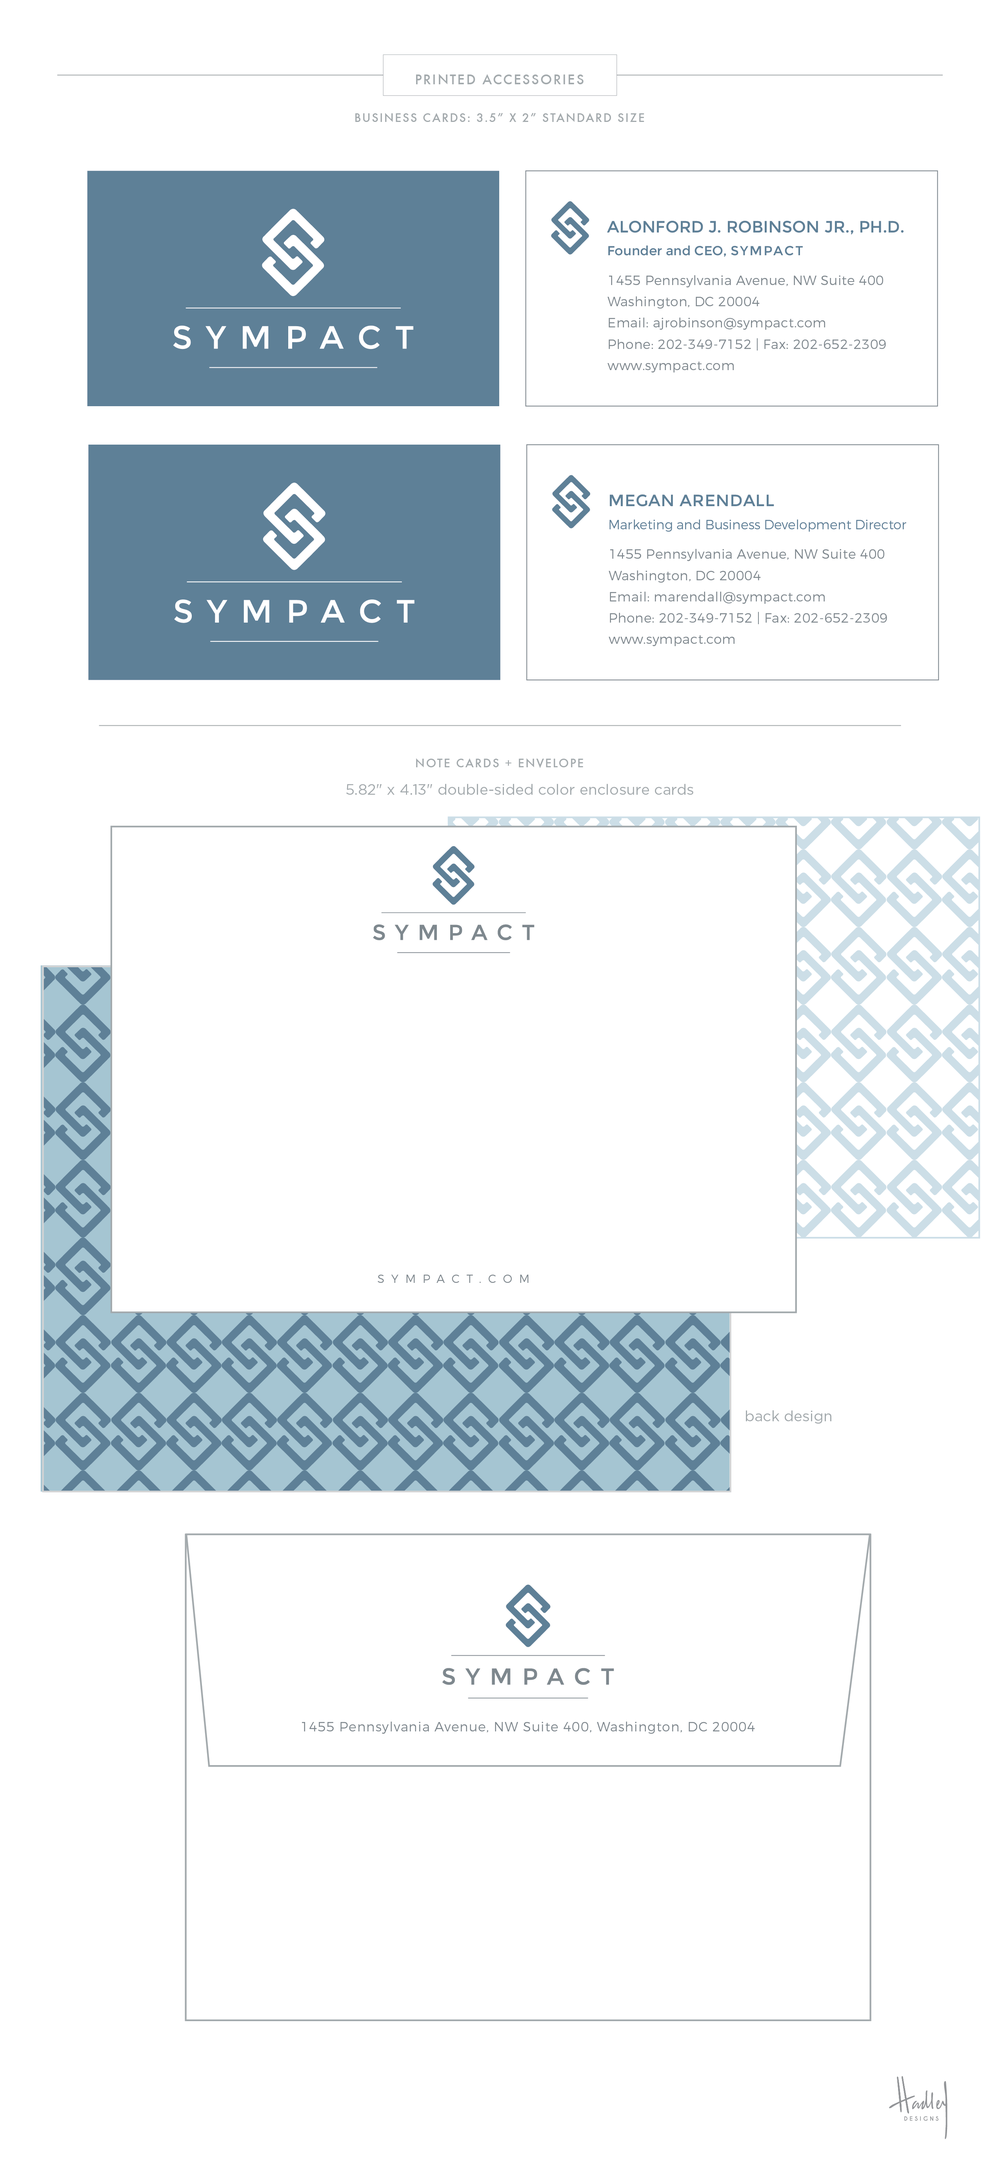 SYMPACT_stationery_v1.png